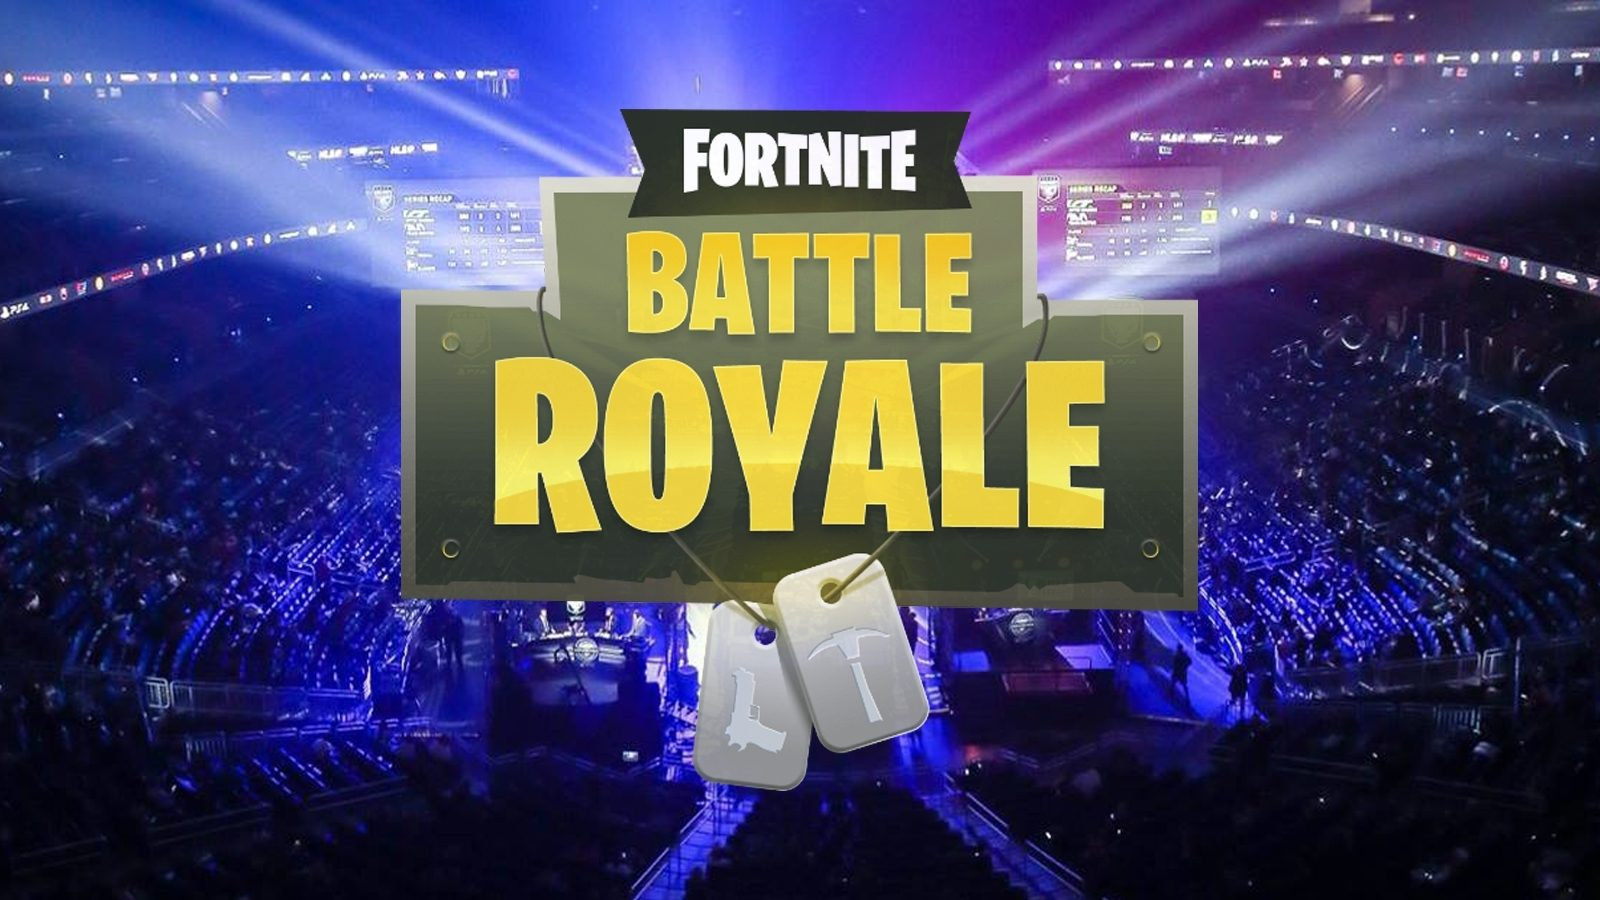 Is fortnite an esport game